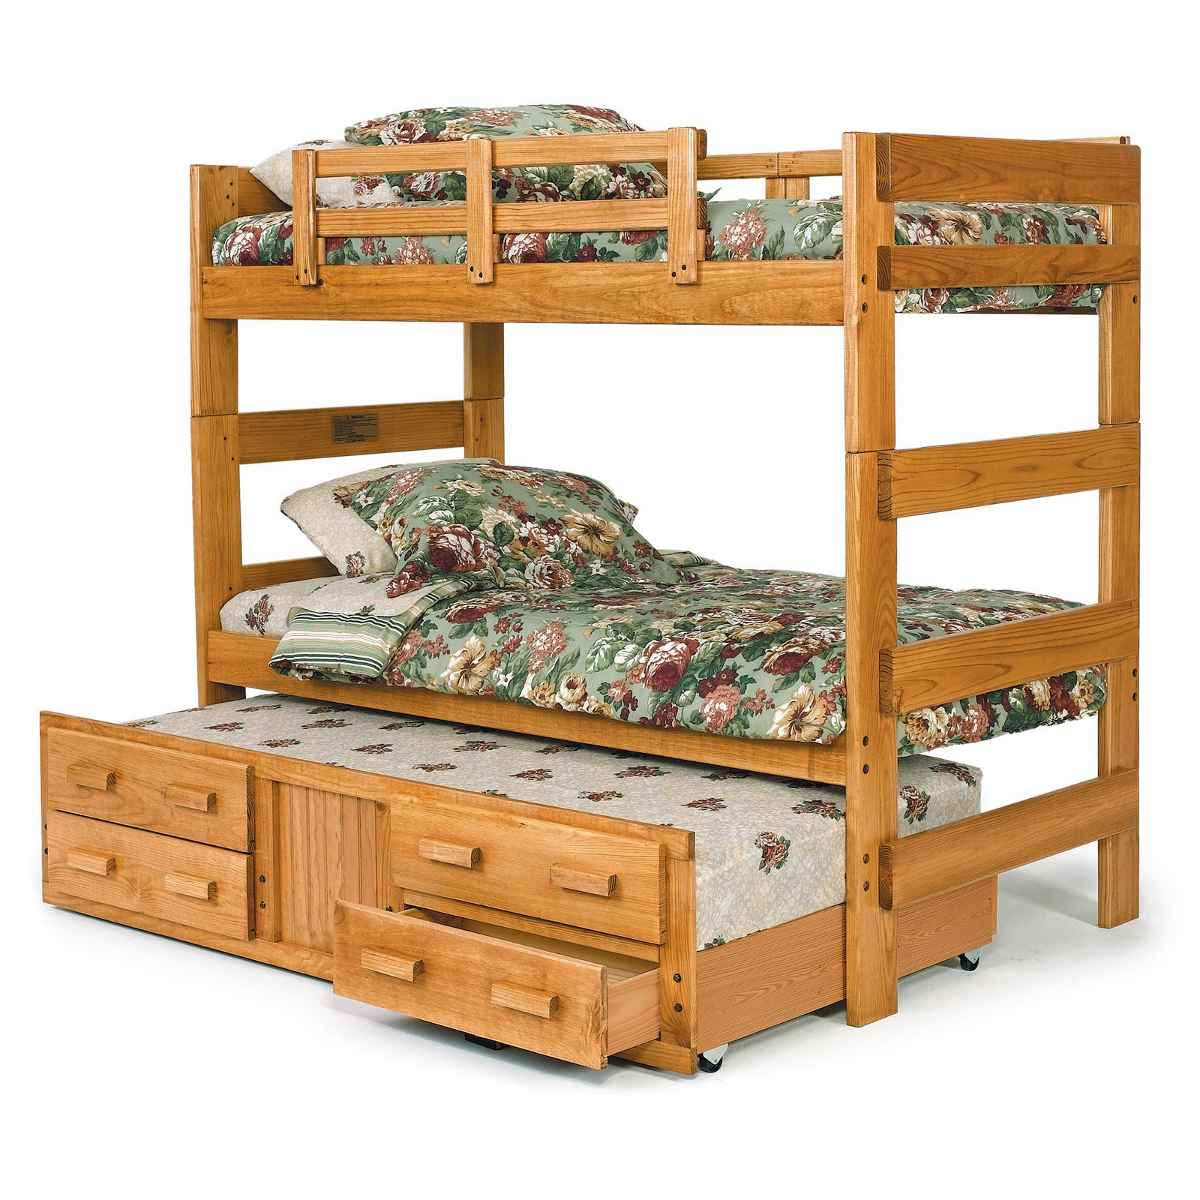 woodcrest heartland teenage bedrooms tubular bunks